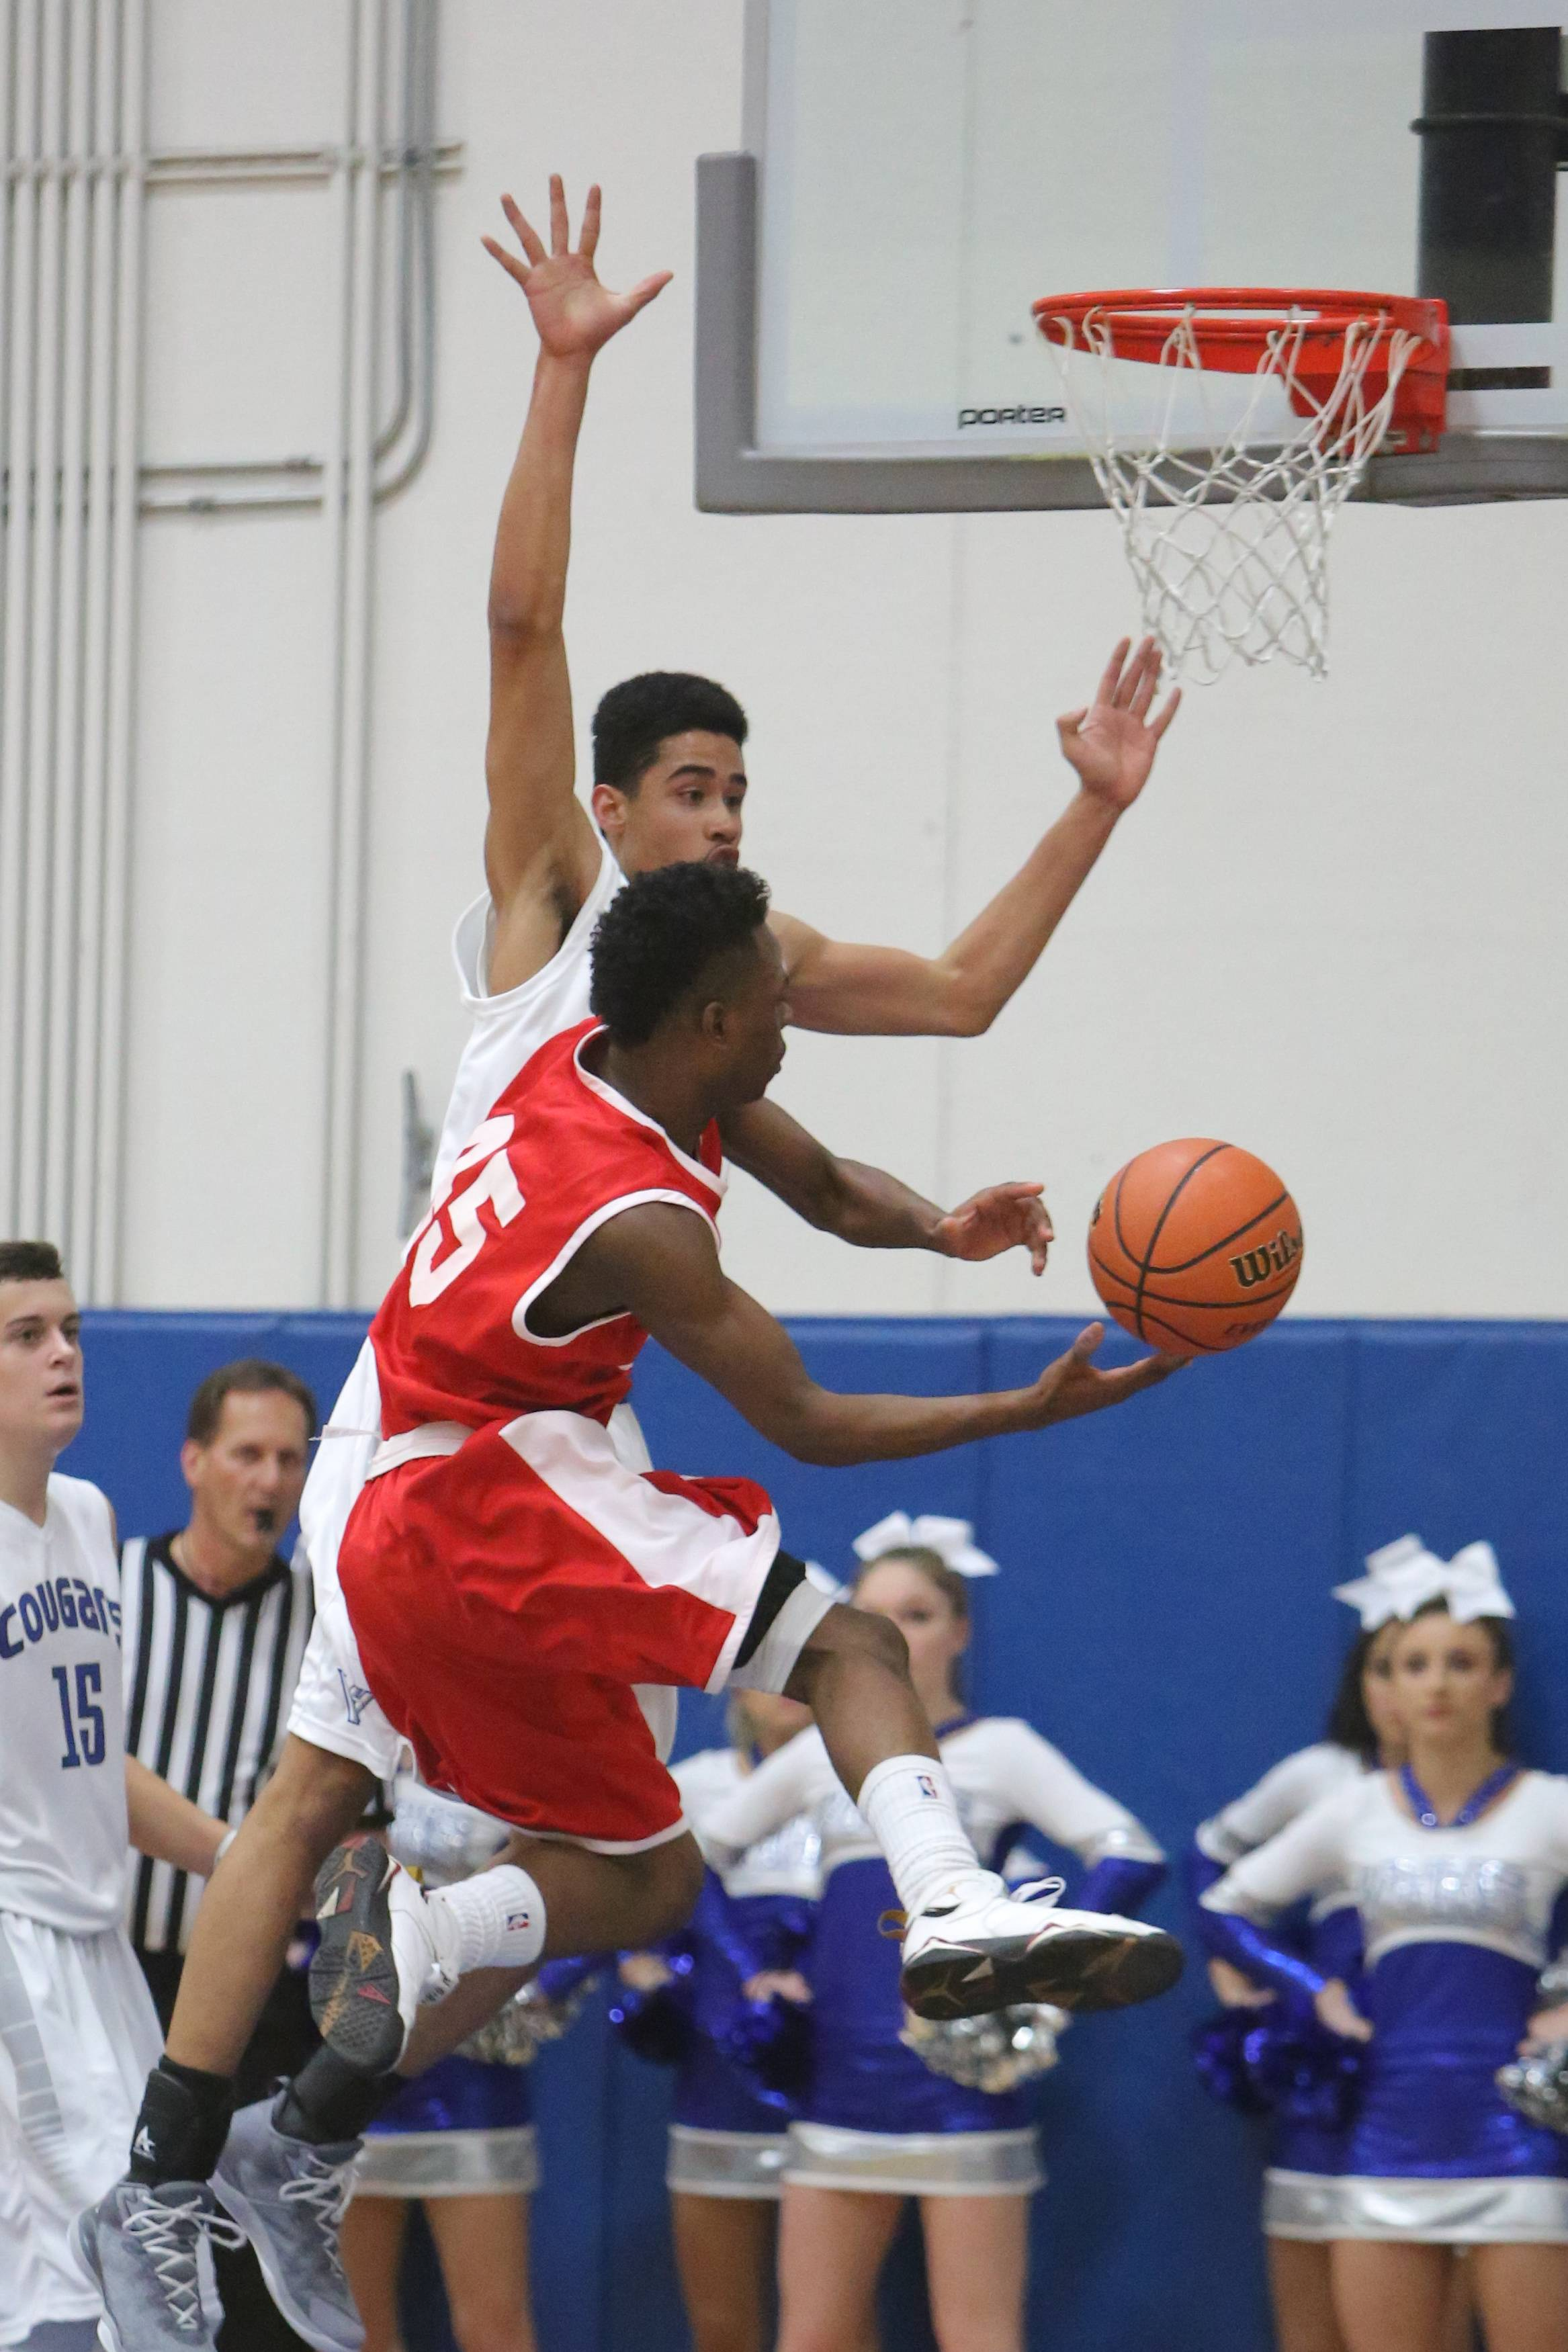 Images from the North Chicago at Vernon Hills boys basketball game on Wednesday, Dec. 17.